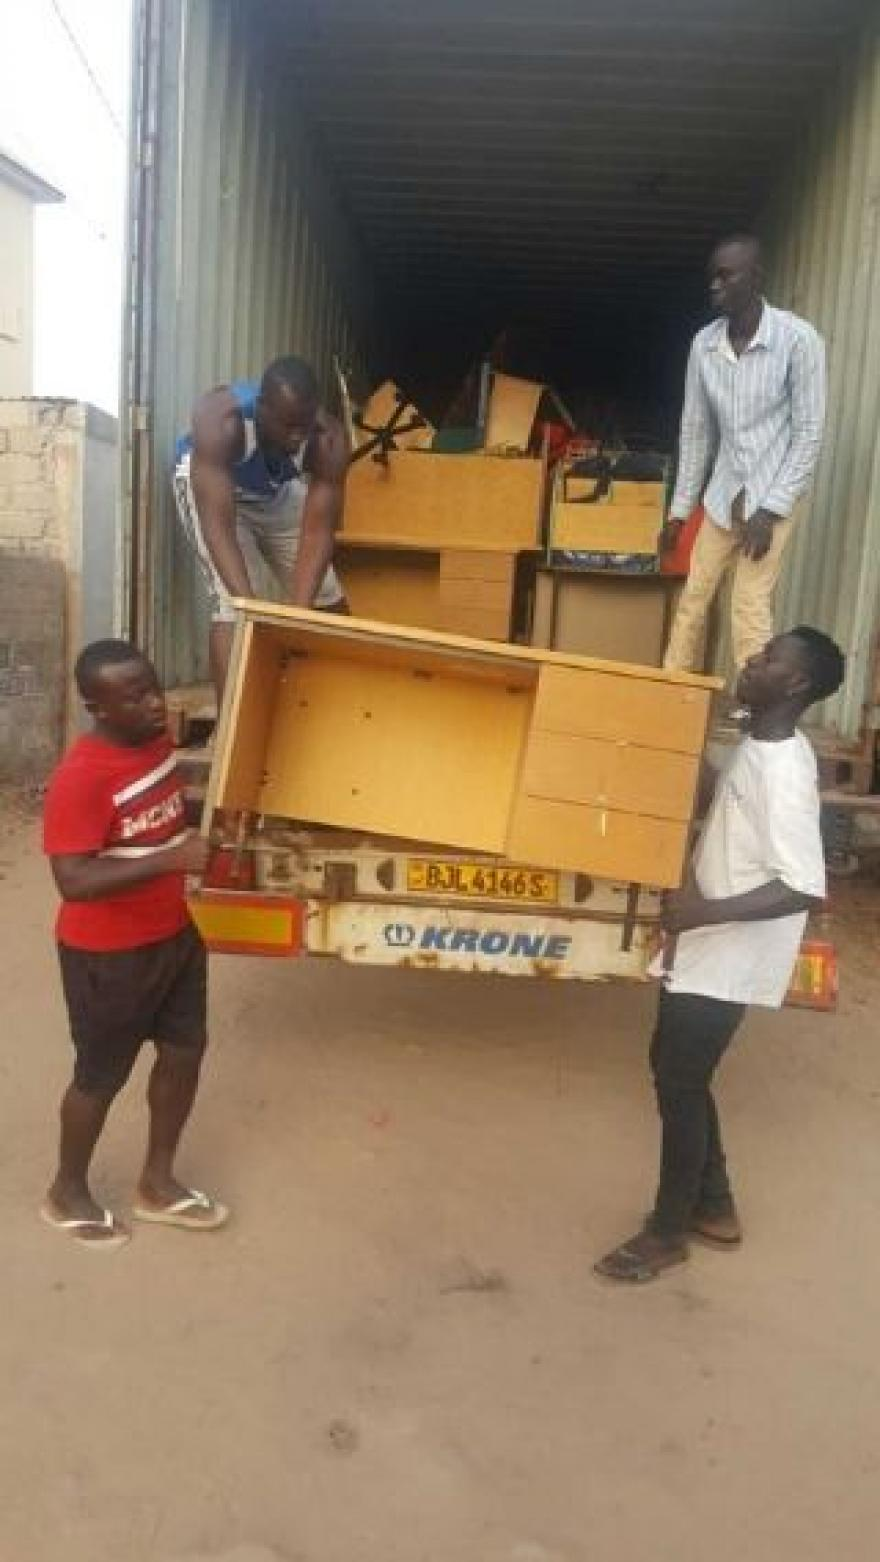 BLAKE'S CONTAINER OF SCHOOLBAGS AND CLASSROOM SUPPLIES REACHES THE GAMBIA!